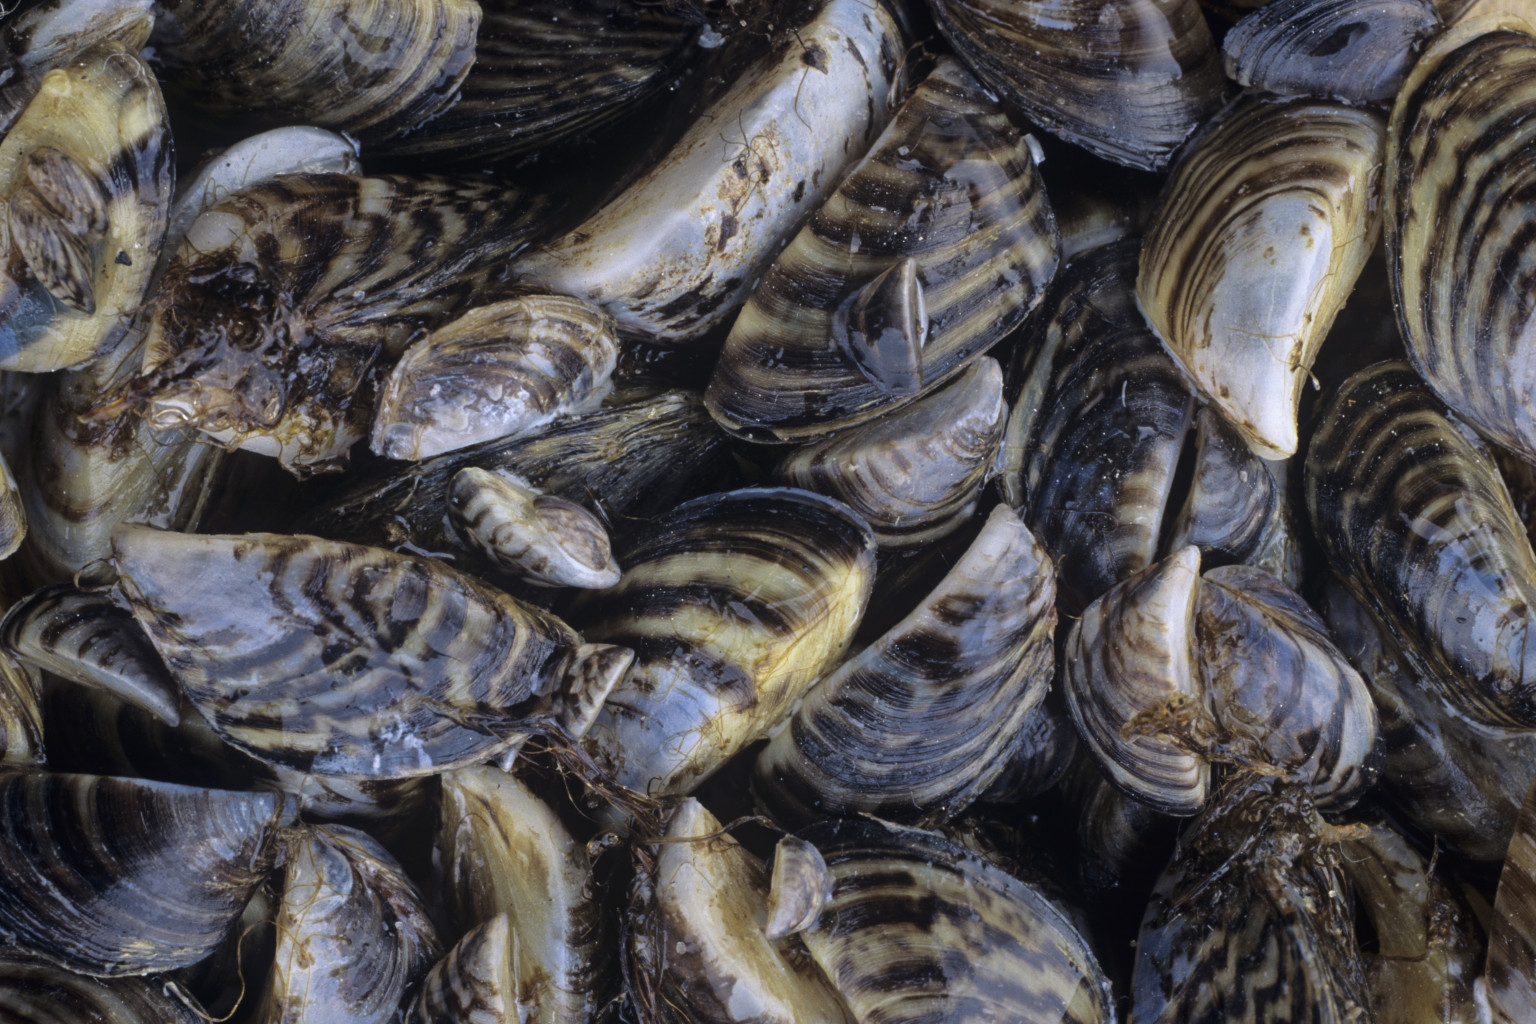 How One Little Mussel Changed The Great Lakes Forever